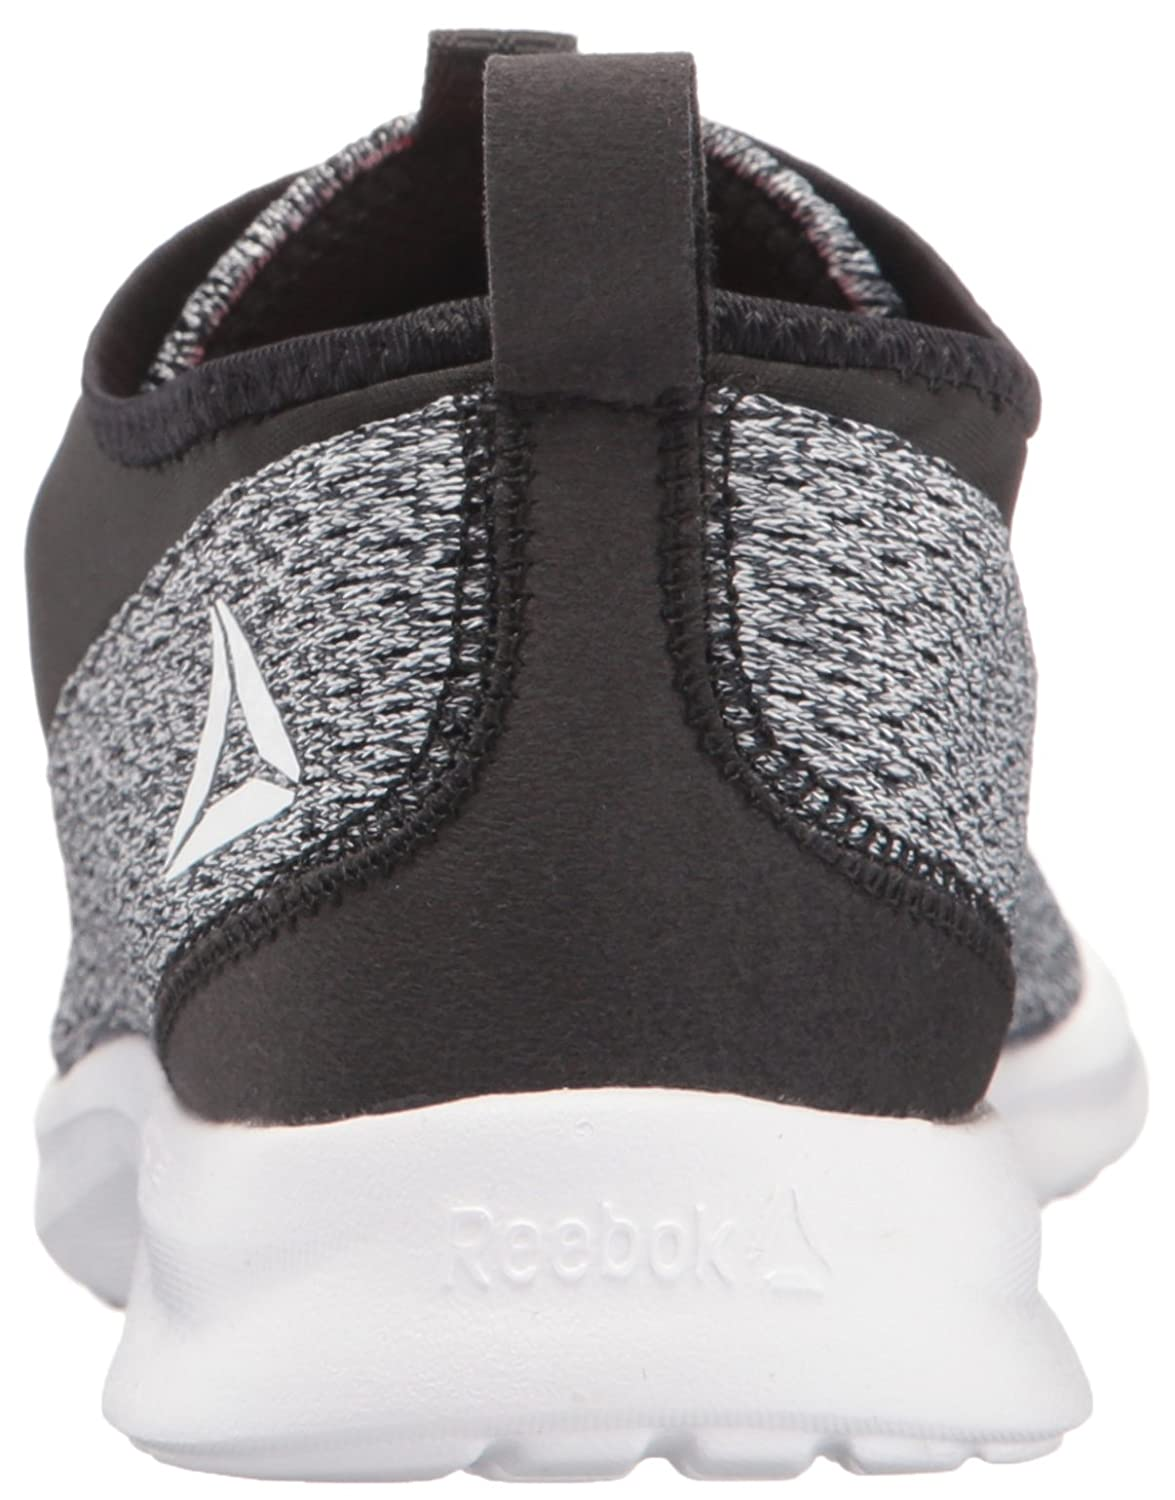 Er Reebok Sko Bra For Walking TSgAVrh